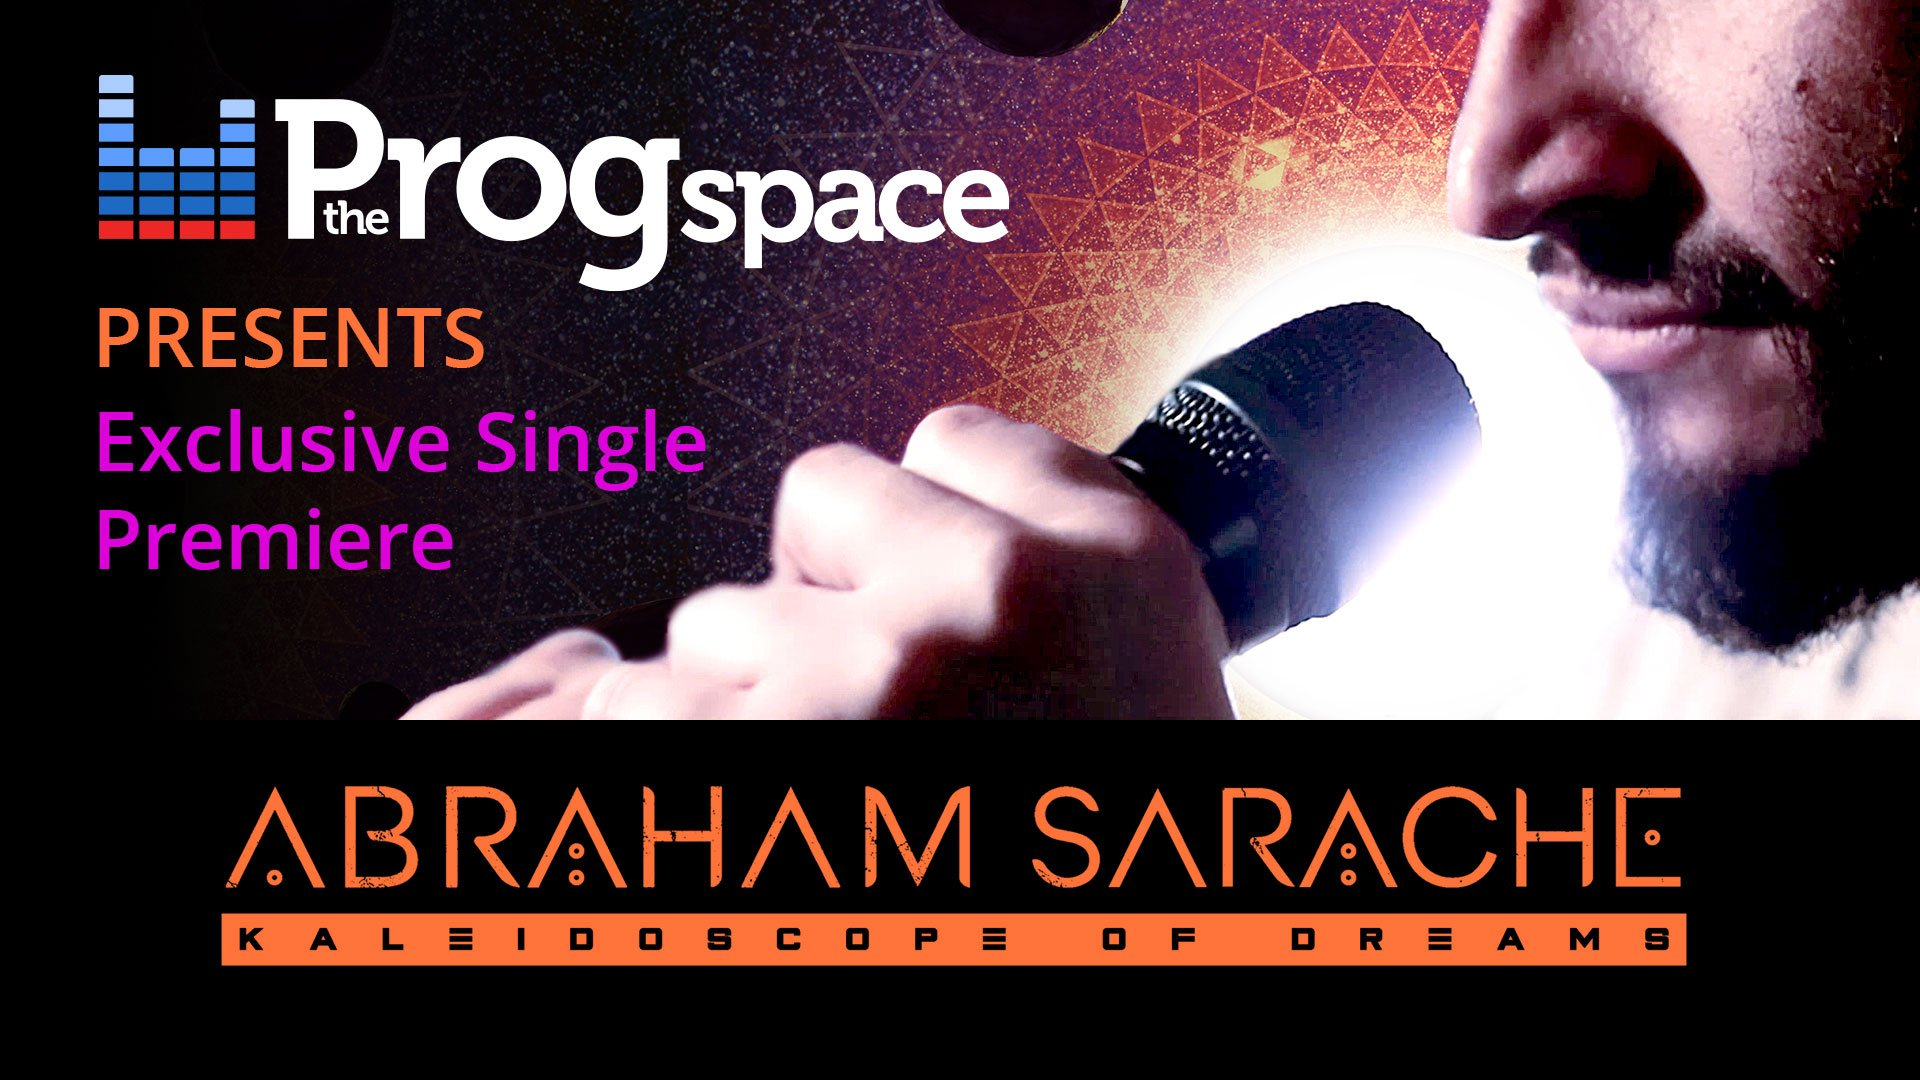 Abraham Sarache – Kaleidoscope of Dreams (Exclusive Single Premiere)